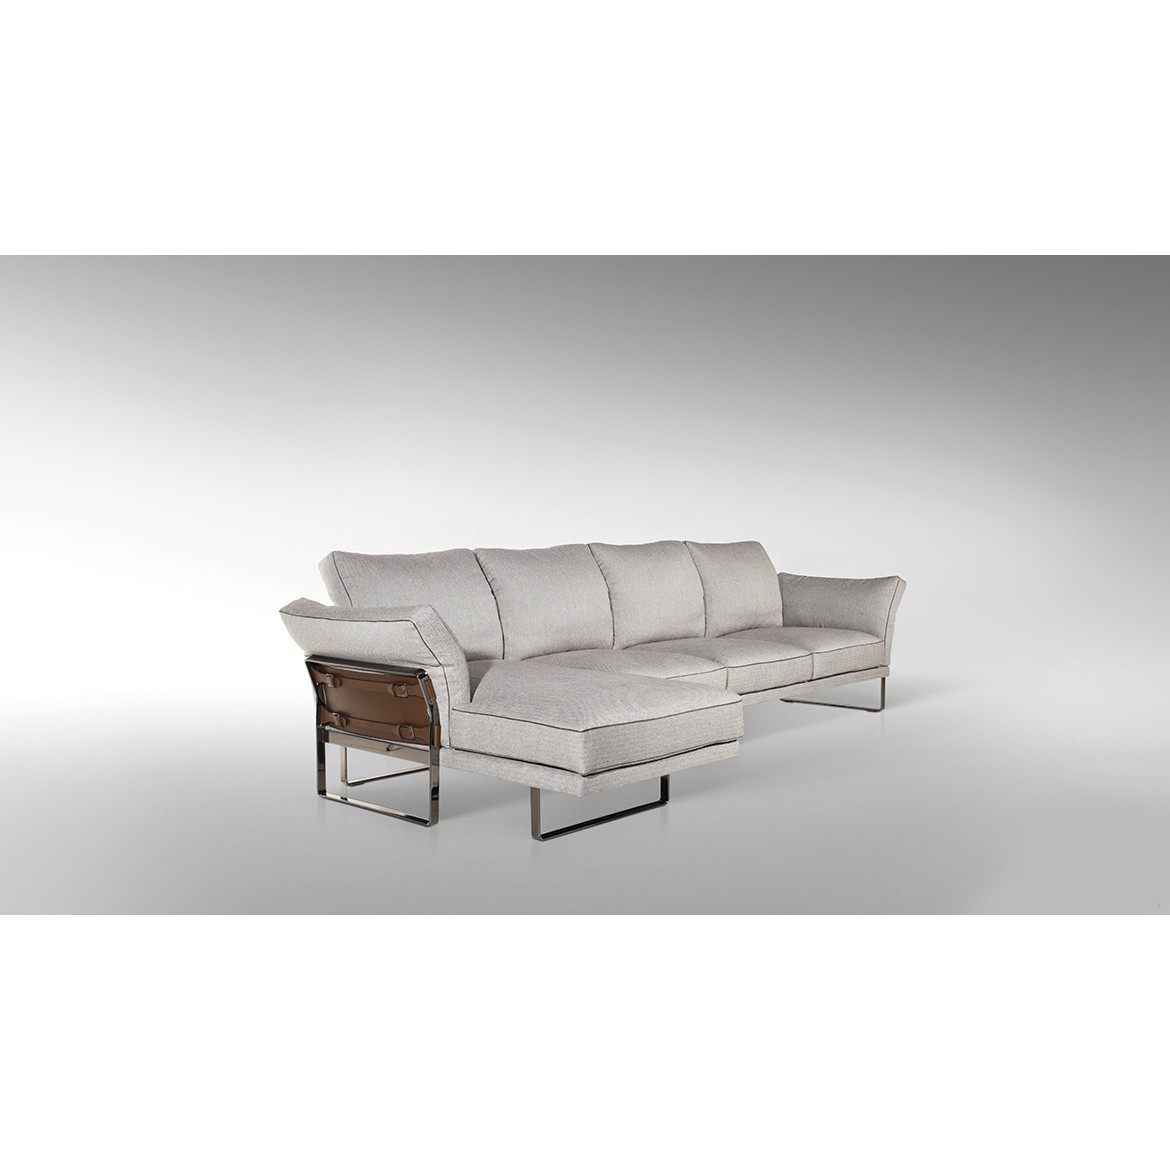 Диван, стиль хай-тек, дизайн Fendi Casa, модель Metropolitan Sectional Sofa